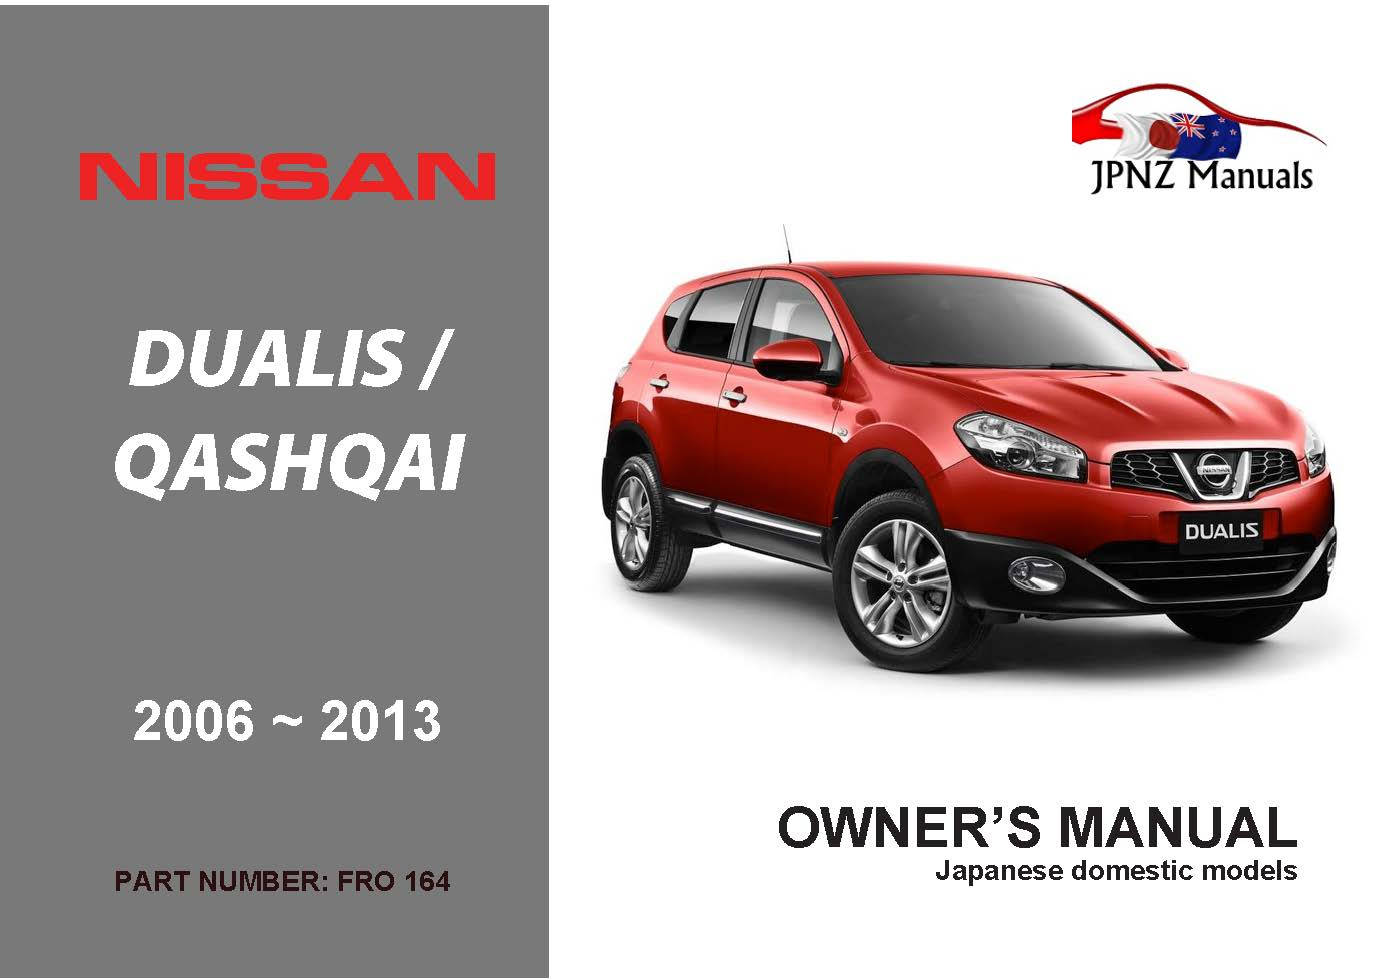 nissan dualis qashqai car owners manual 2006 2013 j10 rh jpnz co nz nissan dualis 2013 owners manual pdf nissan qashqai 2013 owners manual pdf